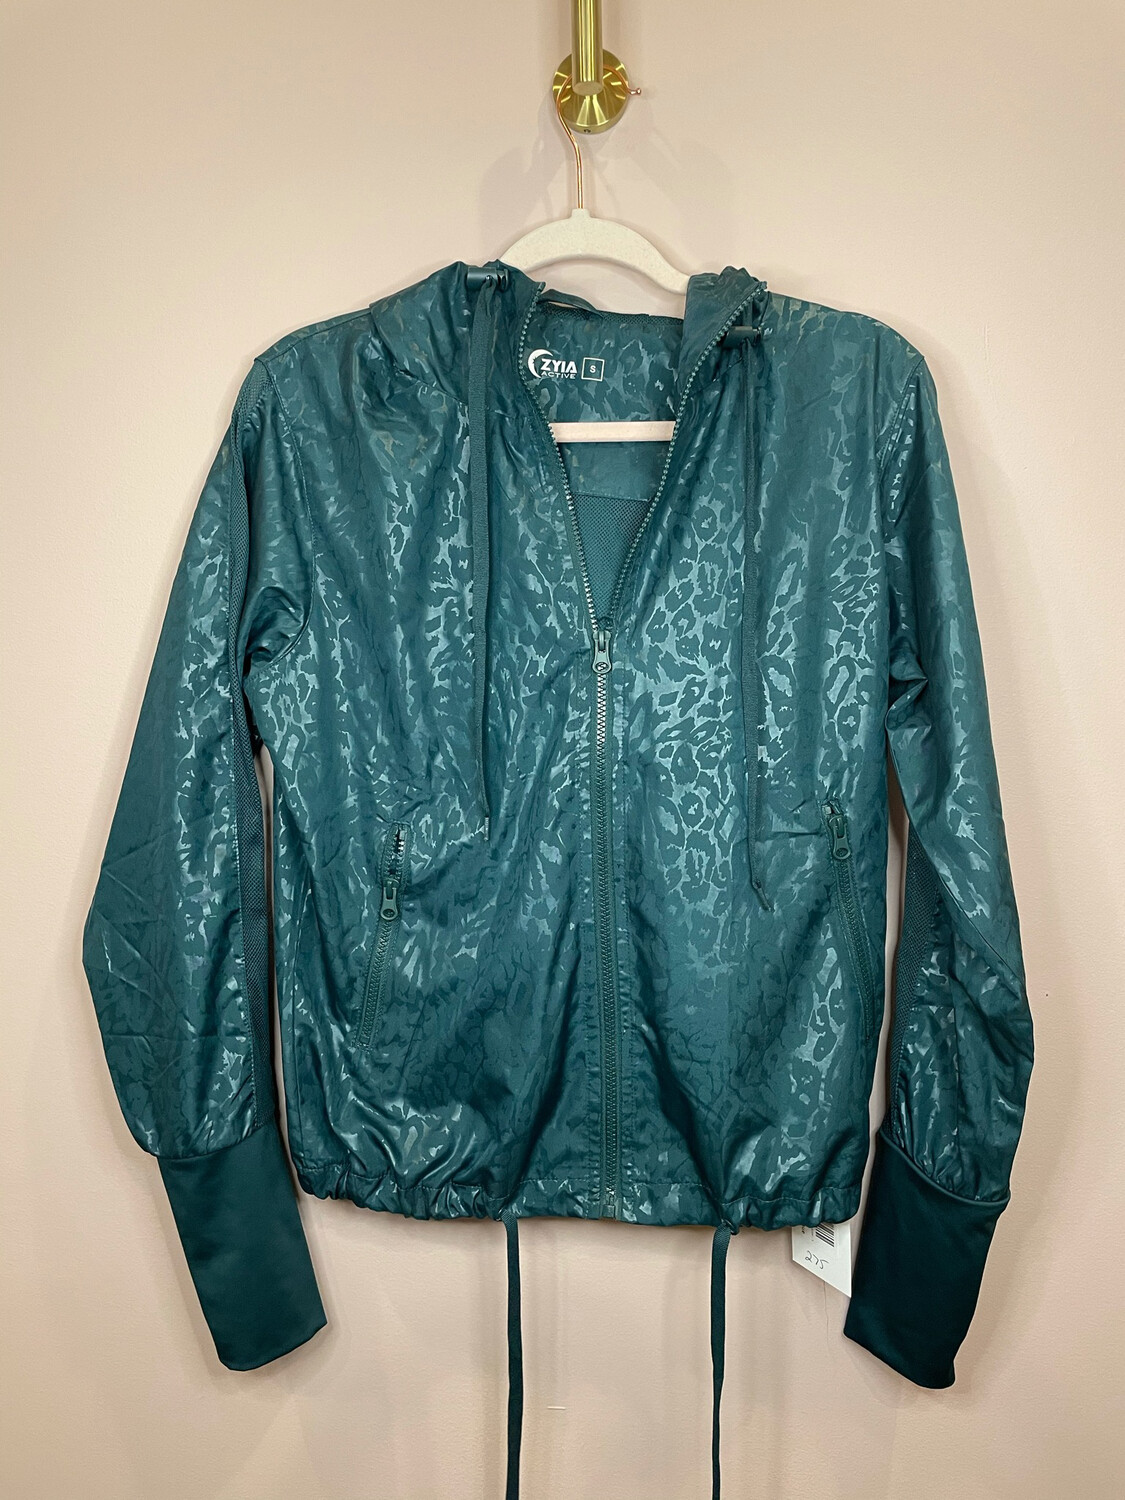 Zyia Active Emerald Green Hooded Zip Up Jacket - S